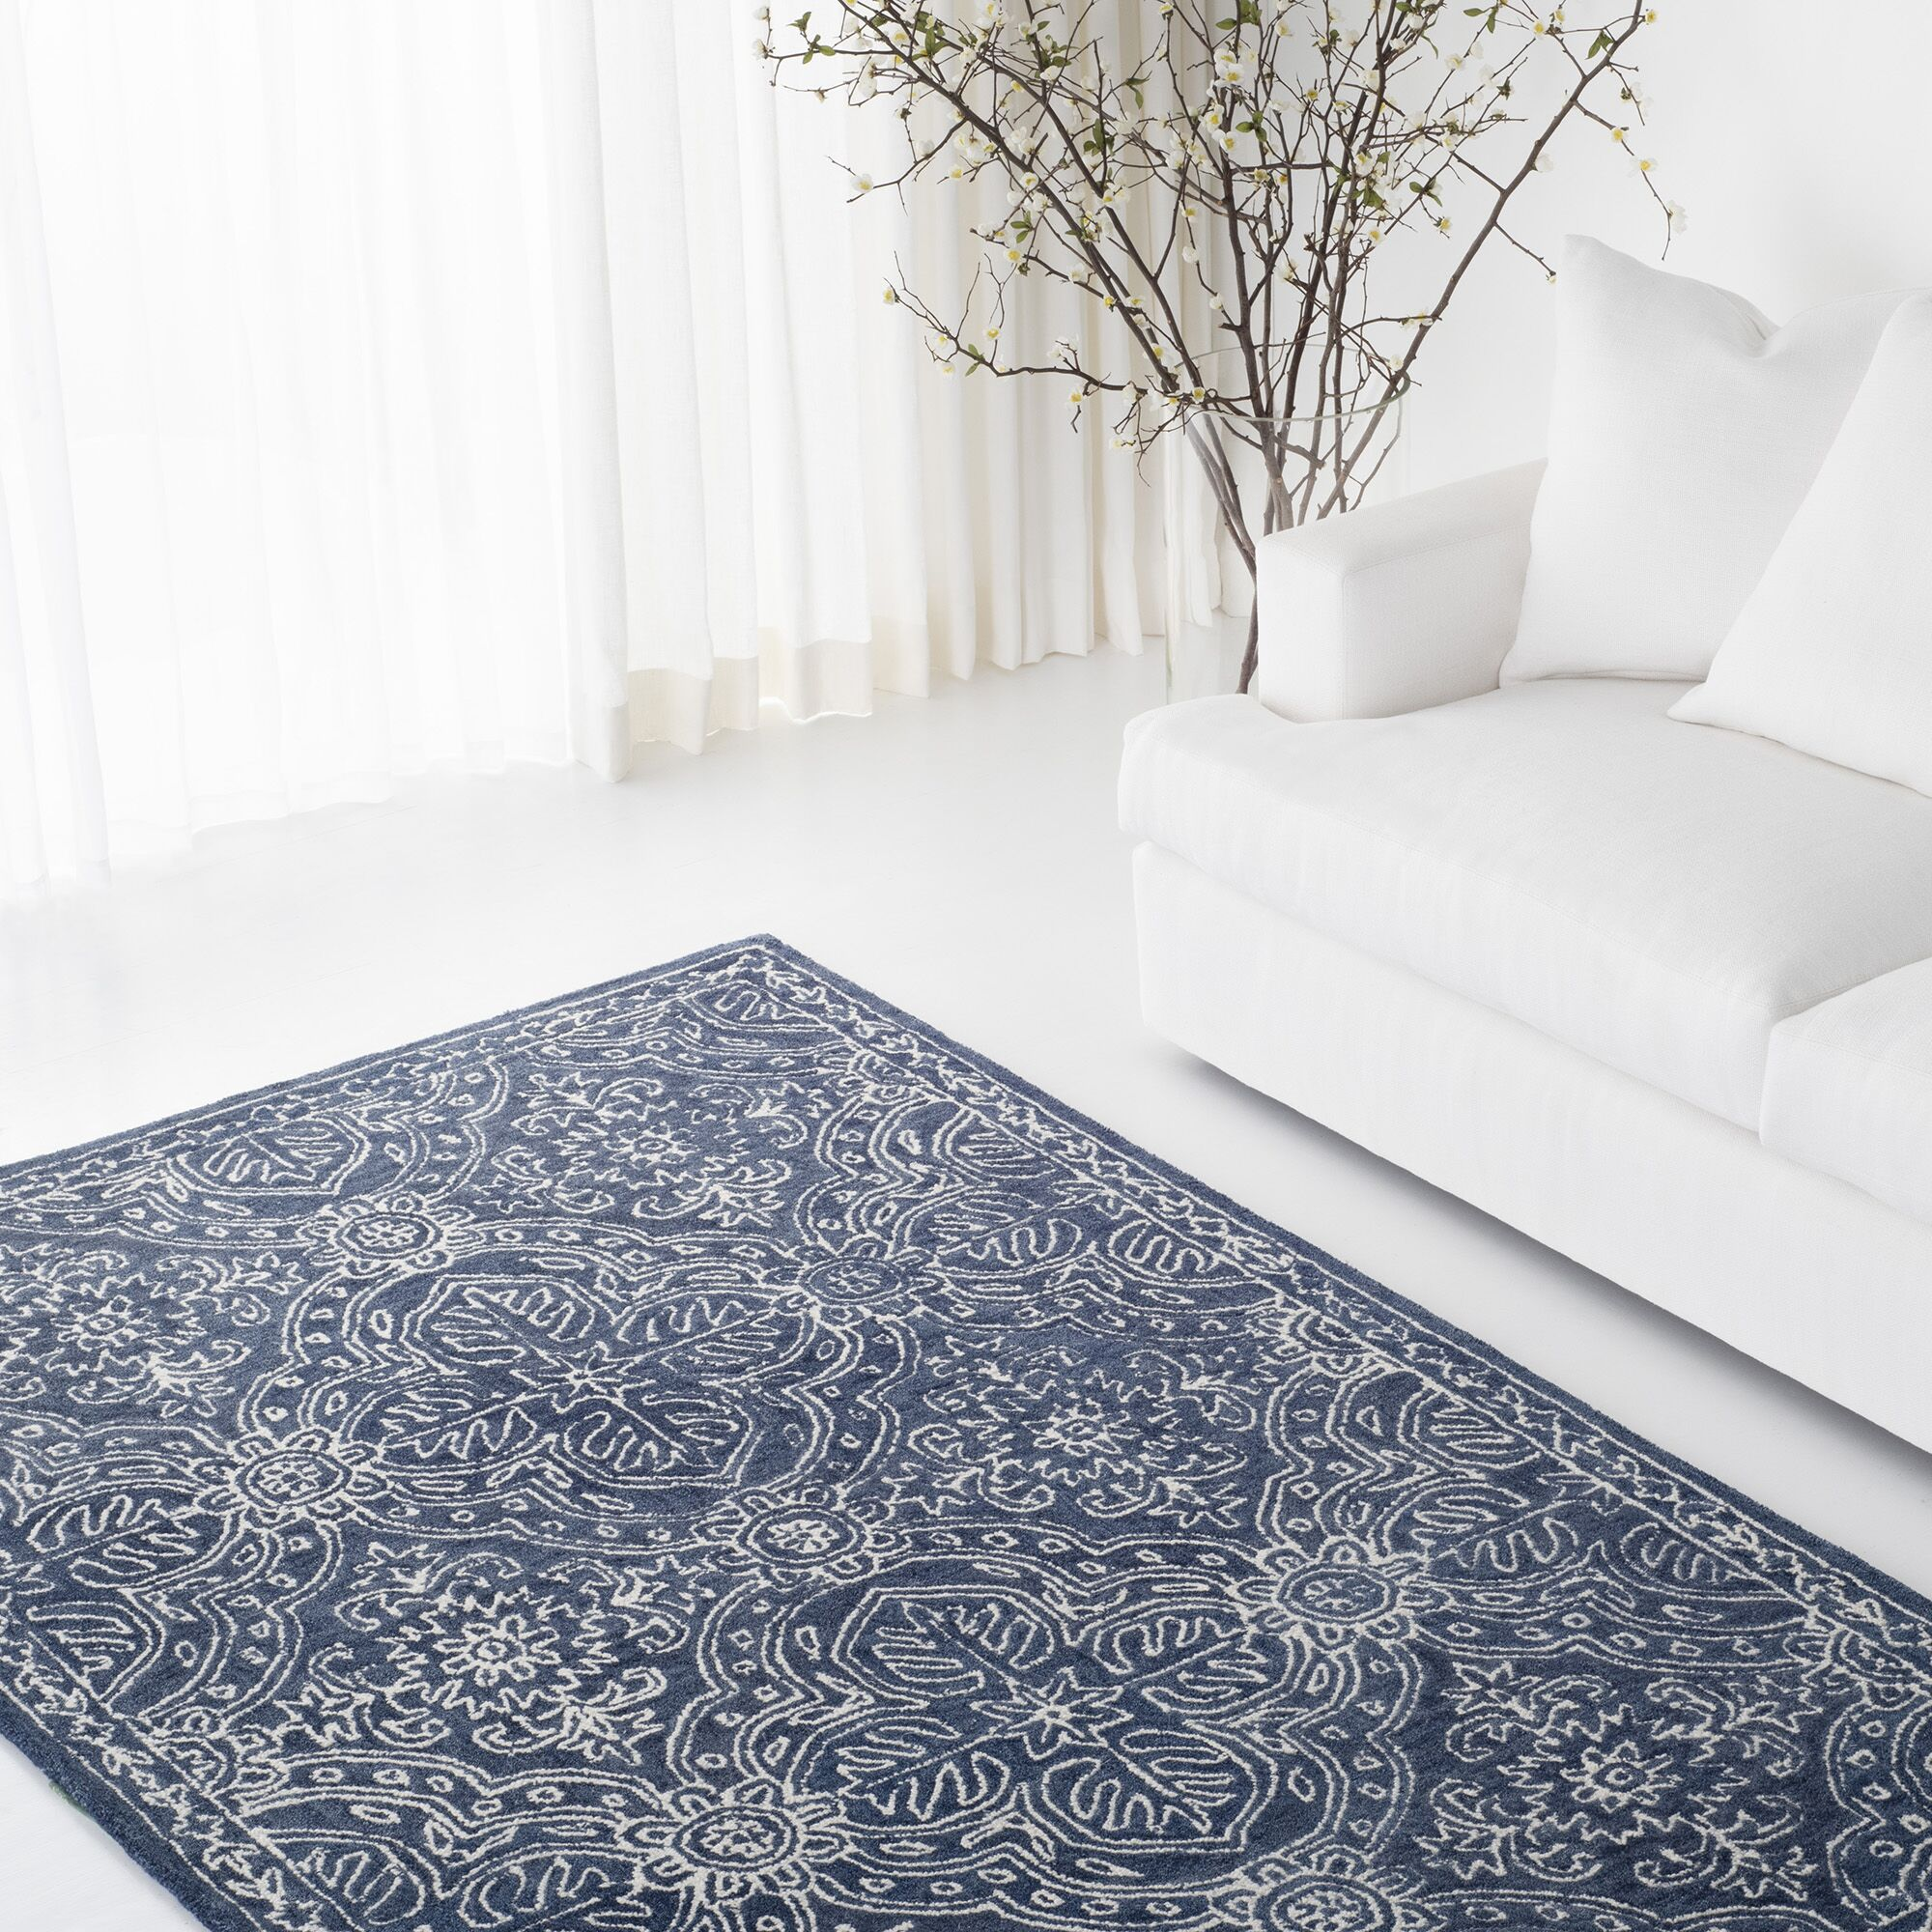 Etienne Hand-Tufted Wool Navy/Ivory Area Rug Rug Size: Round 5'